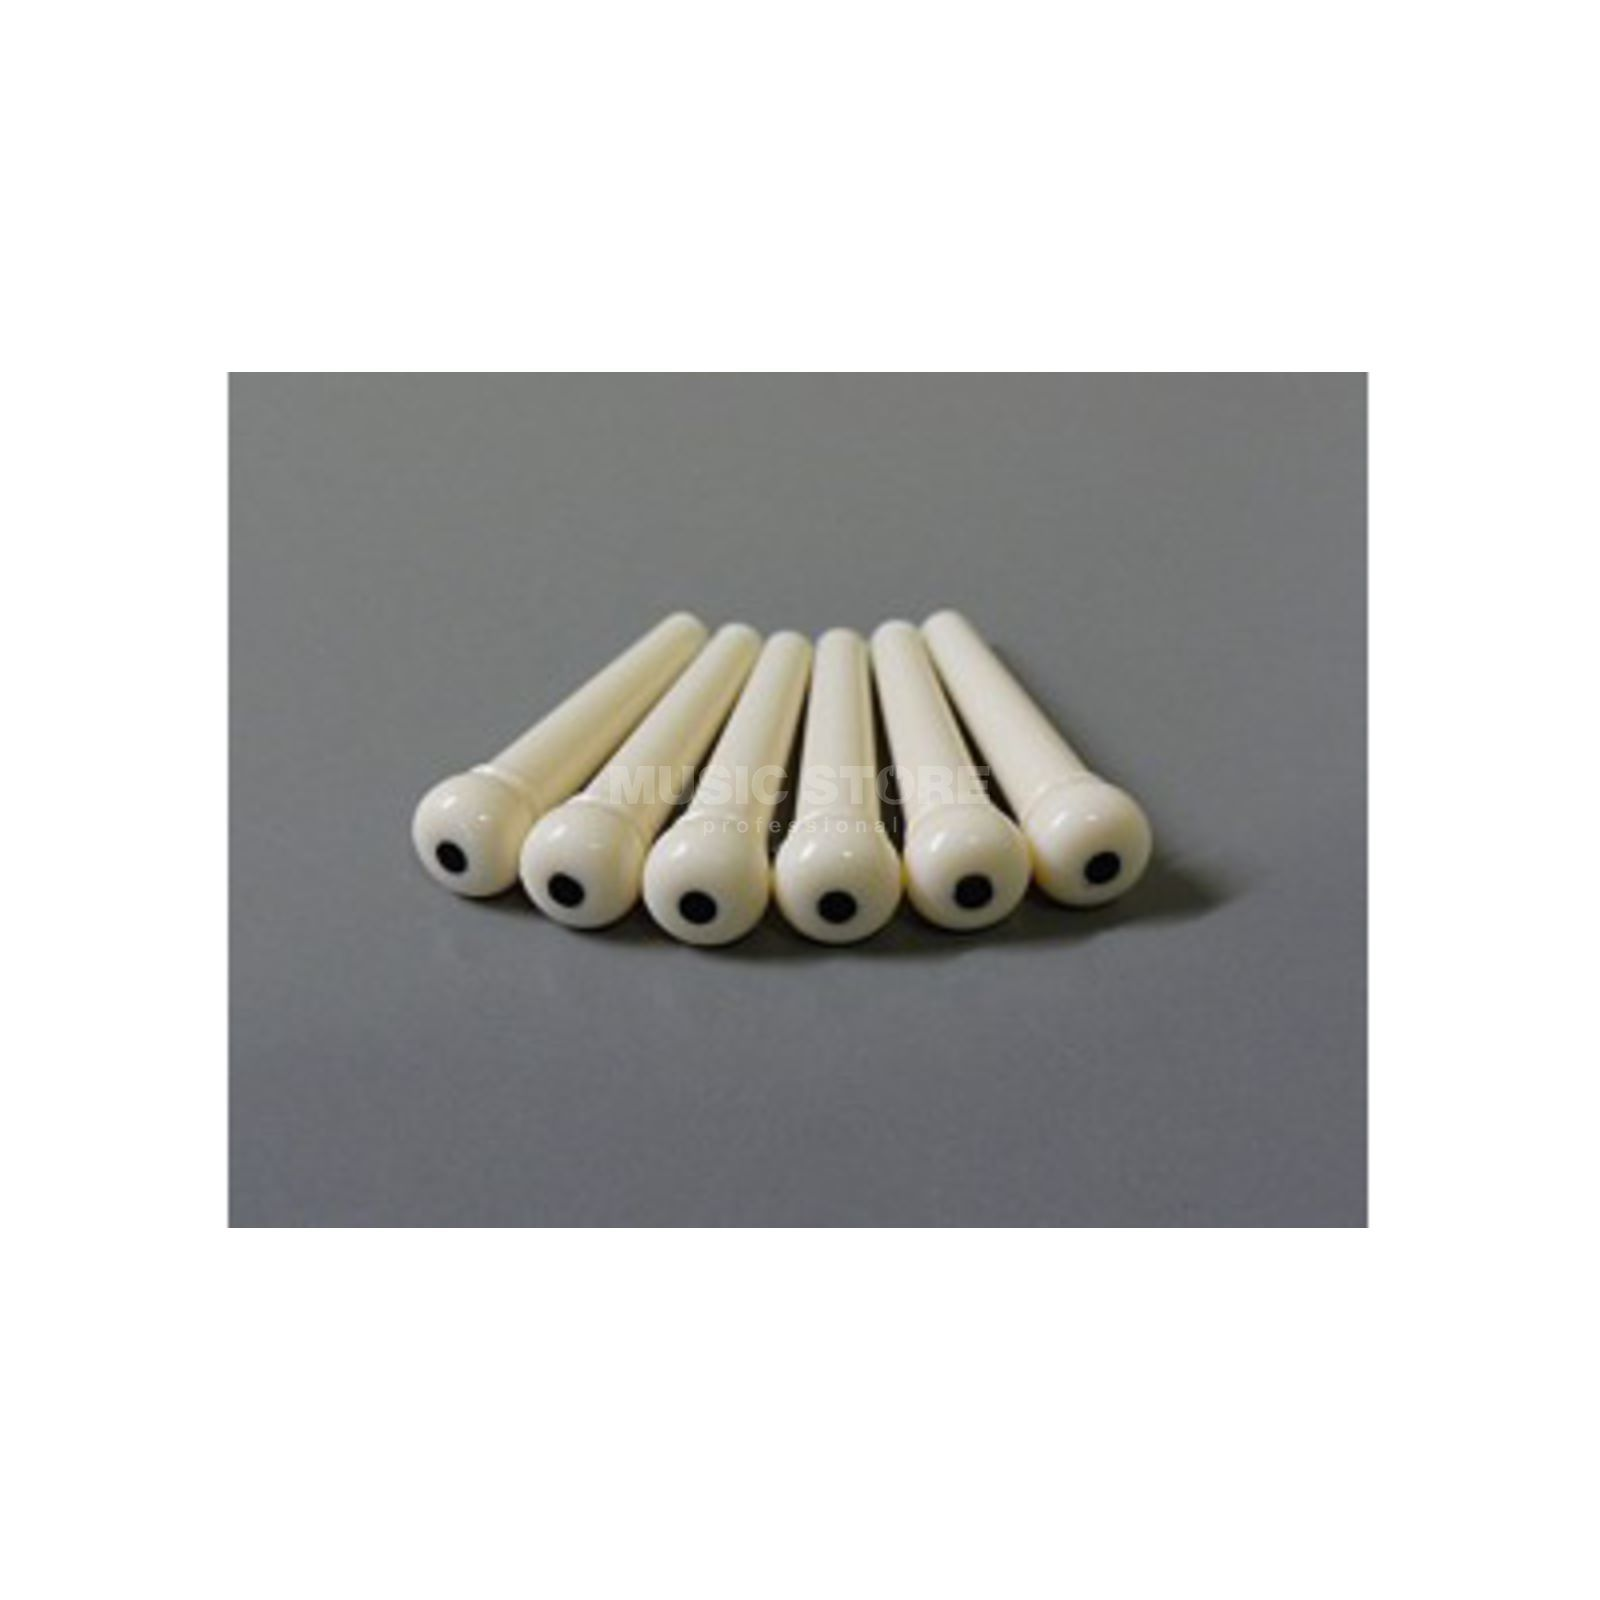 Göldo Bridge Pins 6er Set Ivory, Black Dot HW106 Produktbild